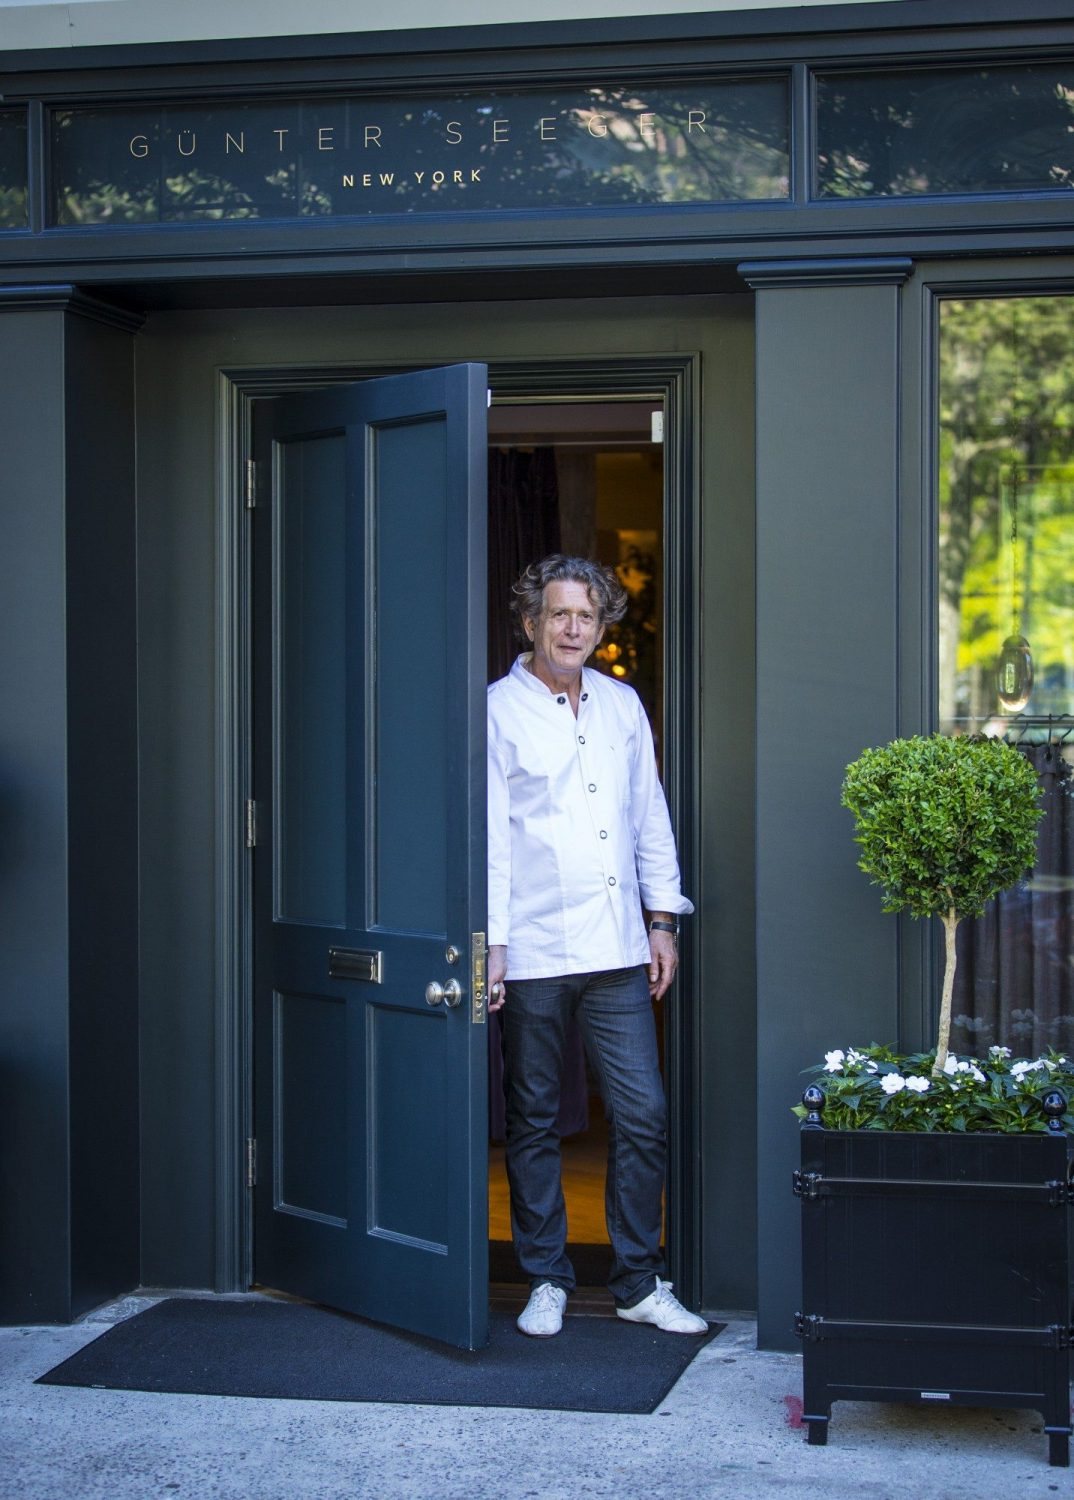 Chef Günter Seeger on the new Günter Seeger NY, why the restaurant looks like a home, and more